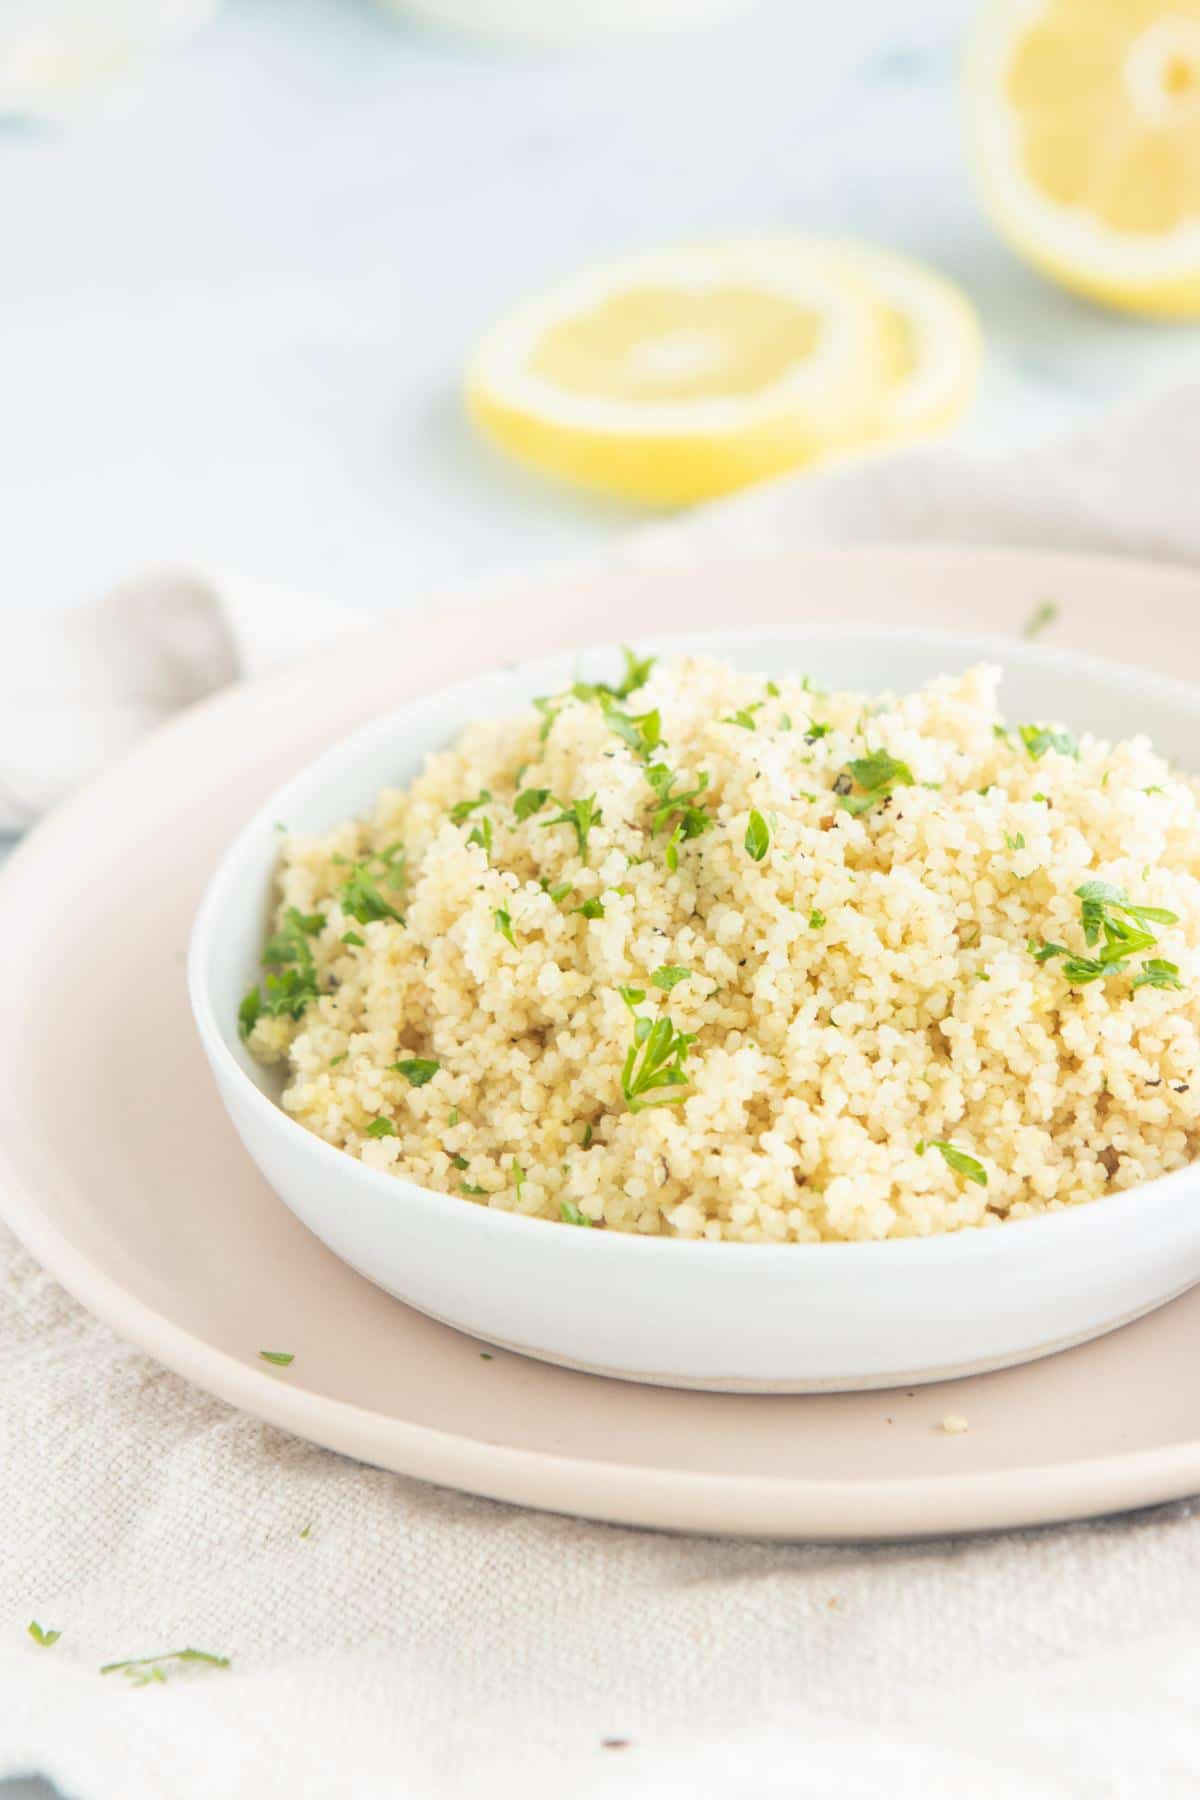 couscous on a pink plate with lemons in back